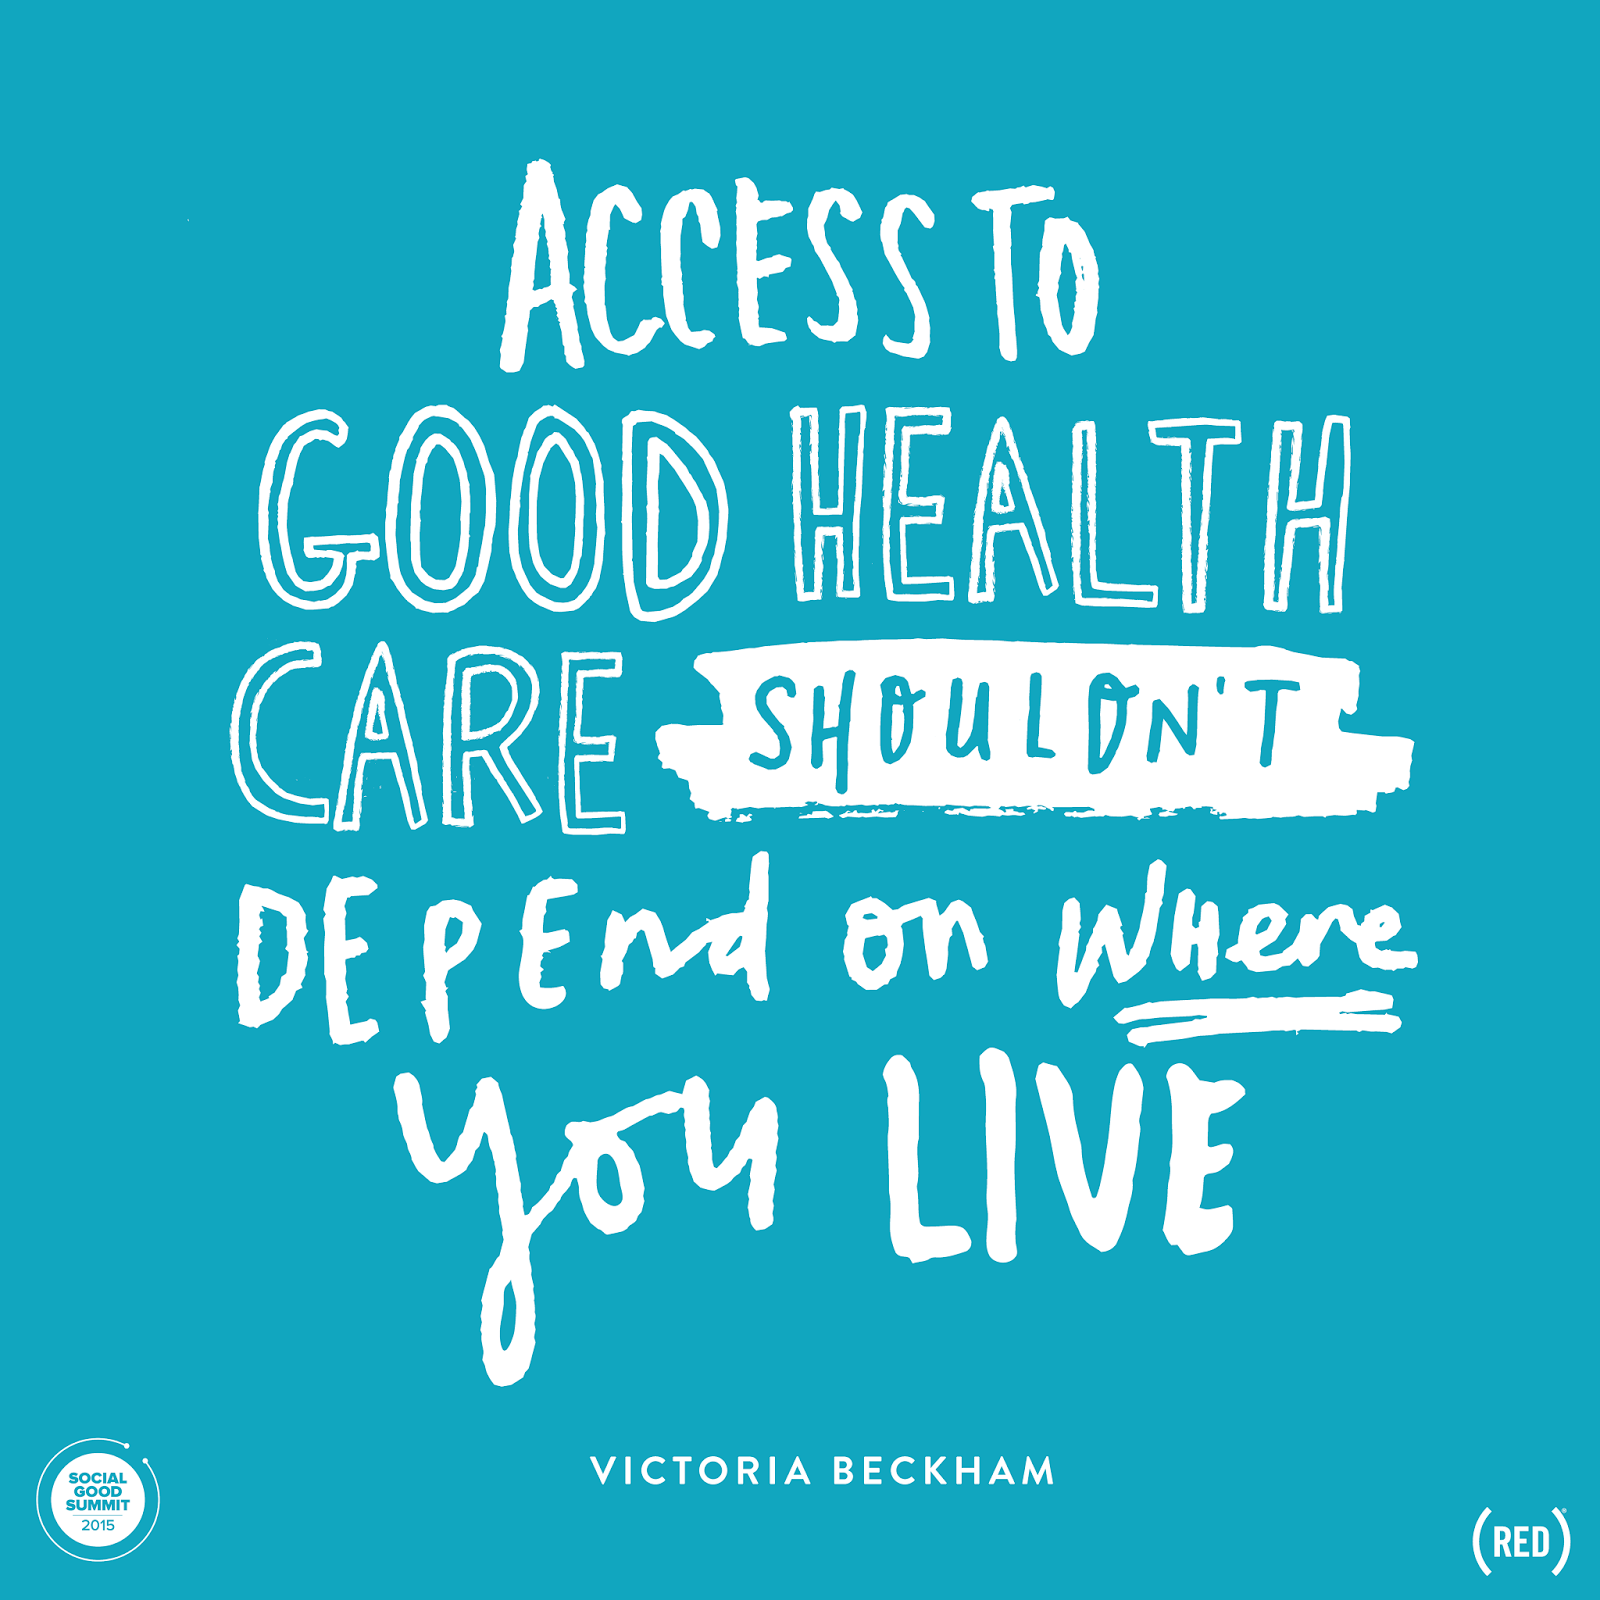 Social Good Summit 2015 Inspiring Quotes For Global Citizens